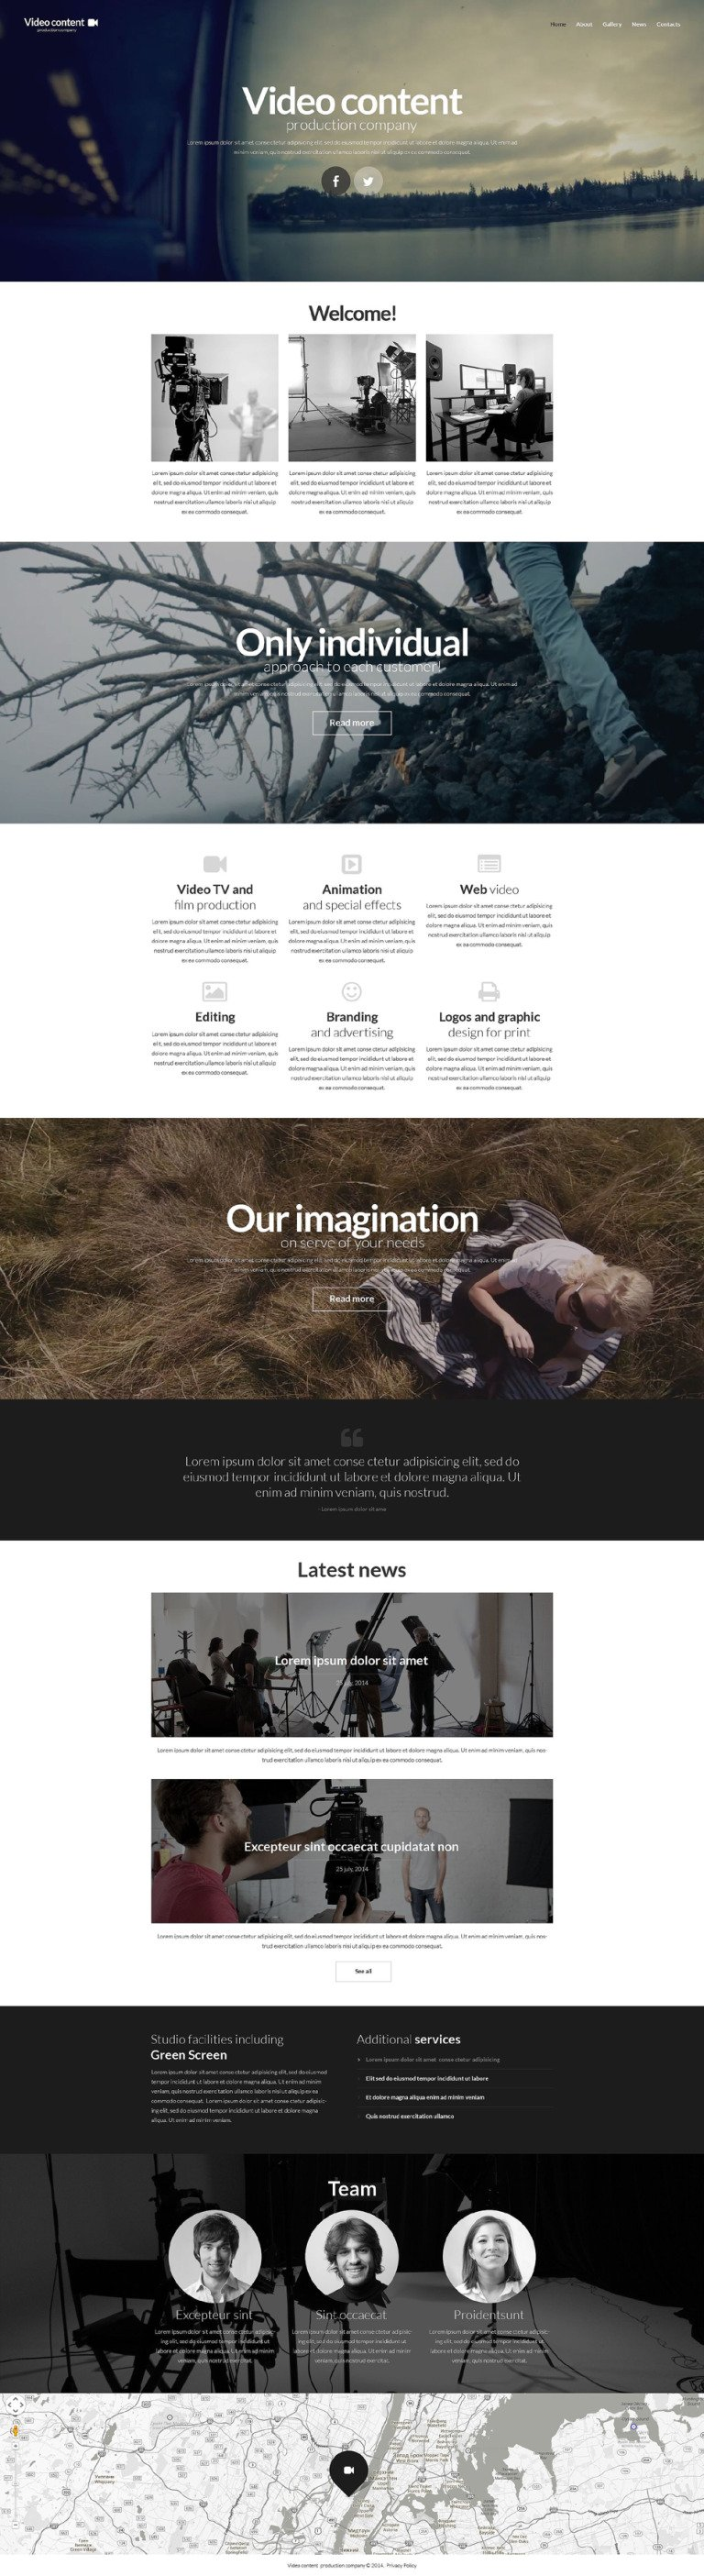 video production website template